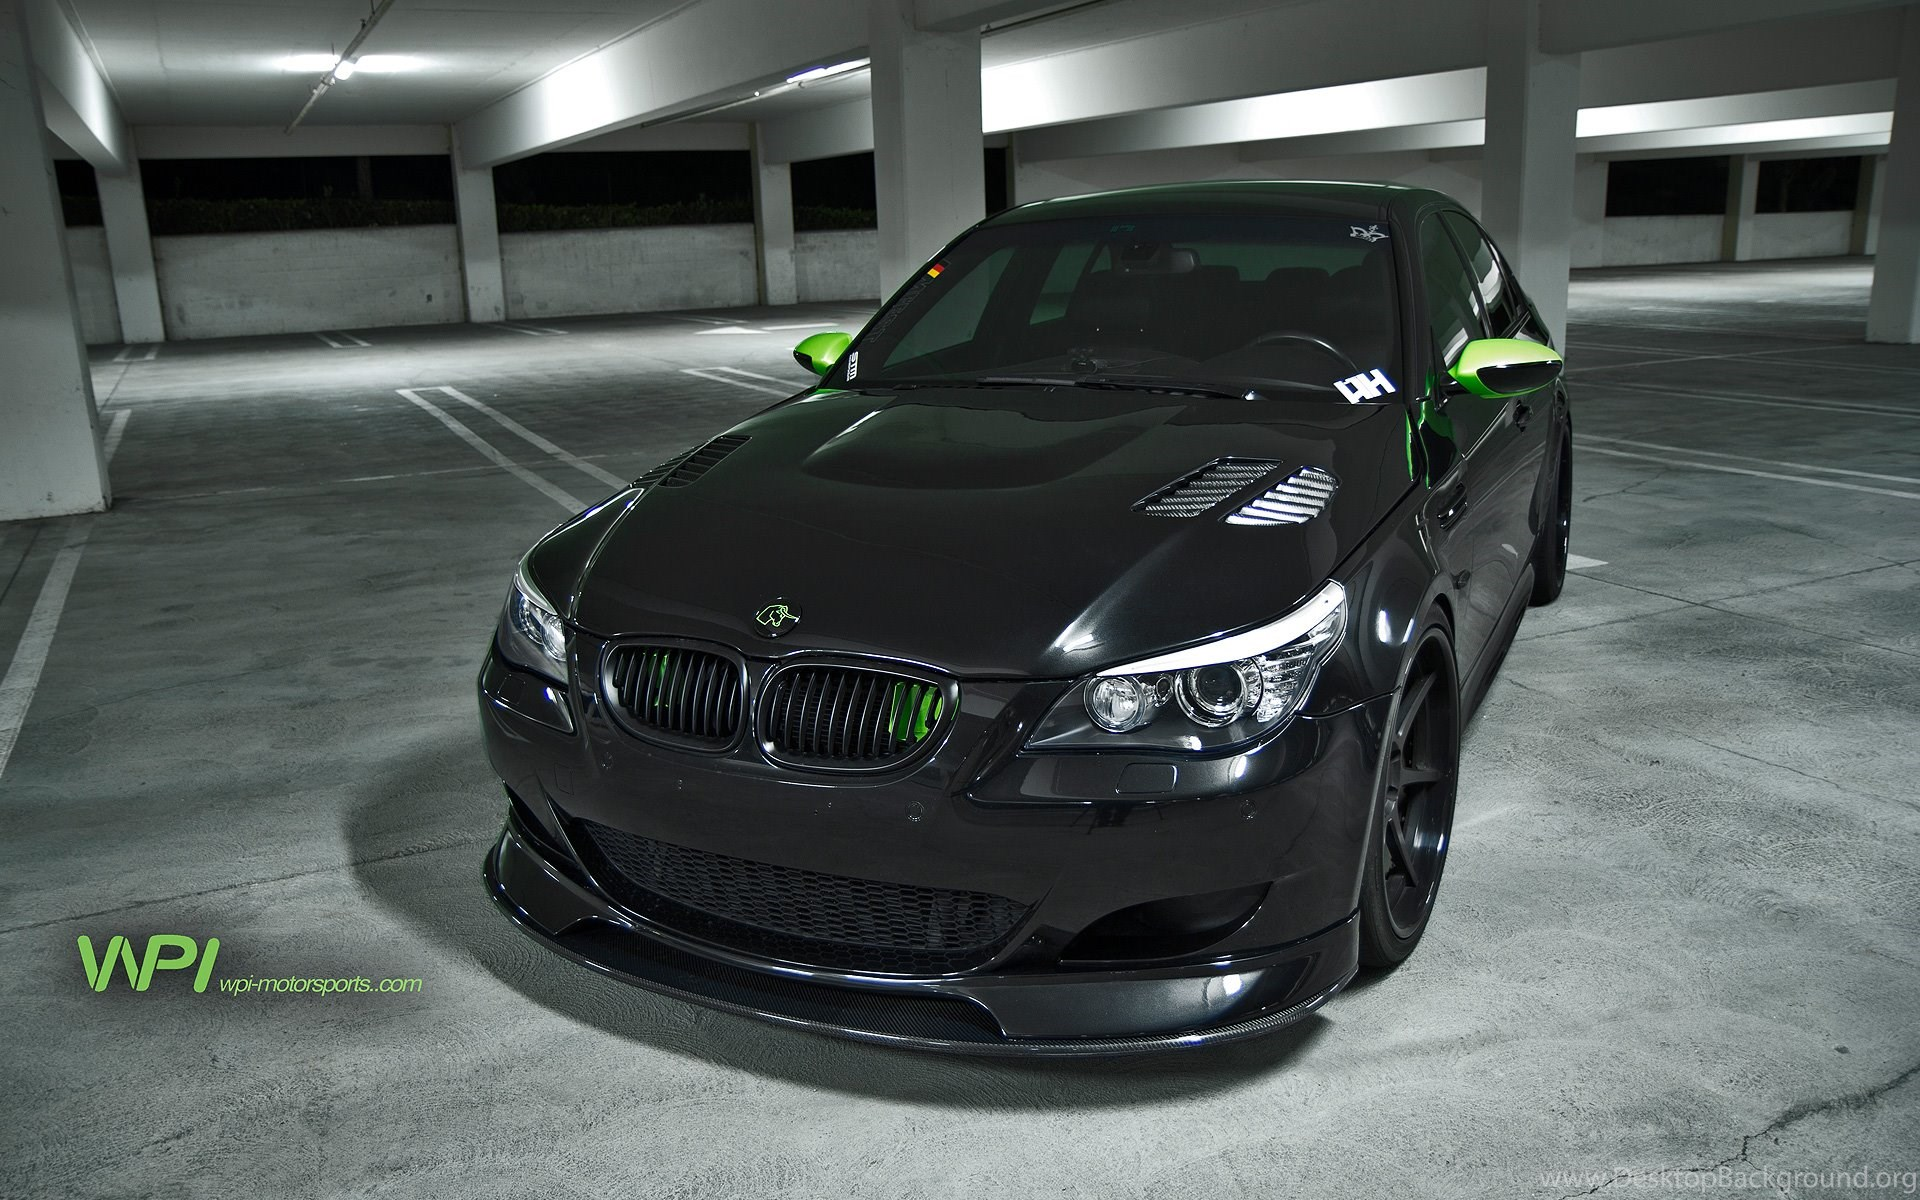 BMW E60 M5 Modded Wallpapers